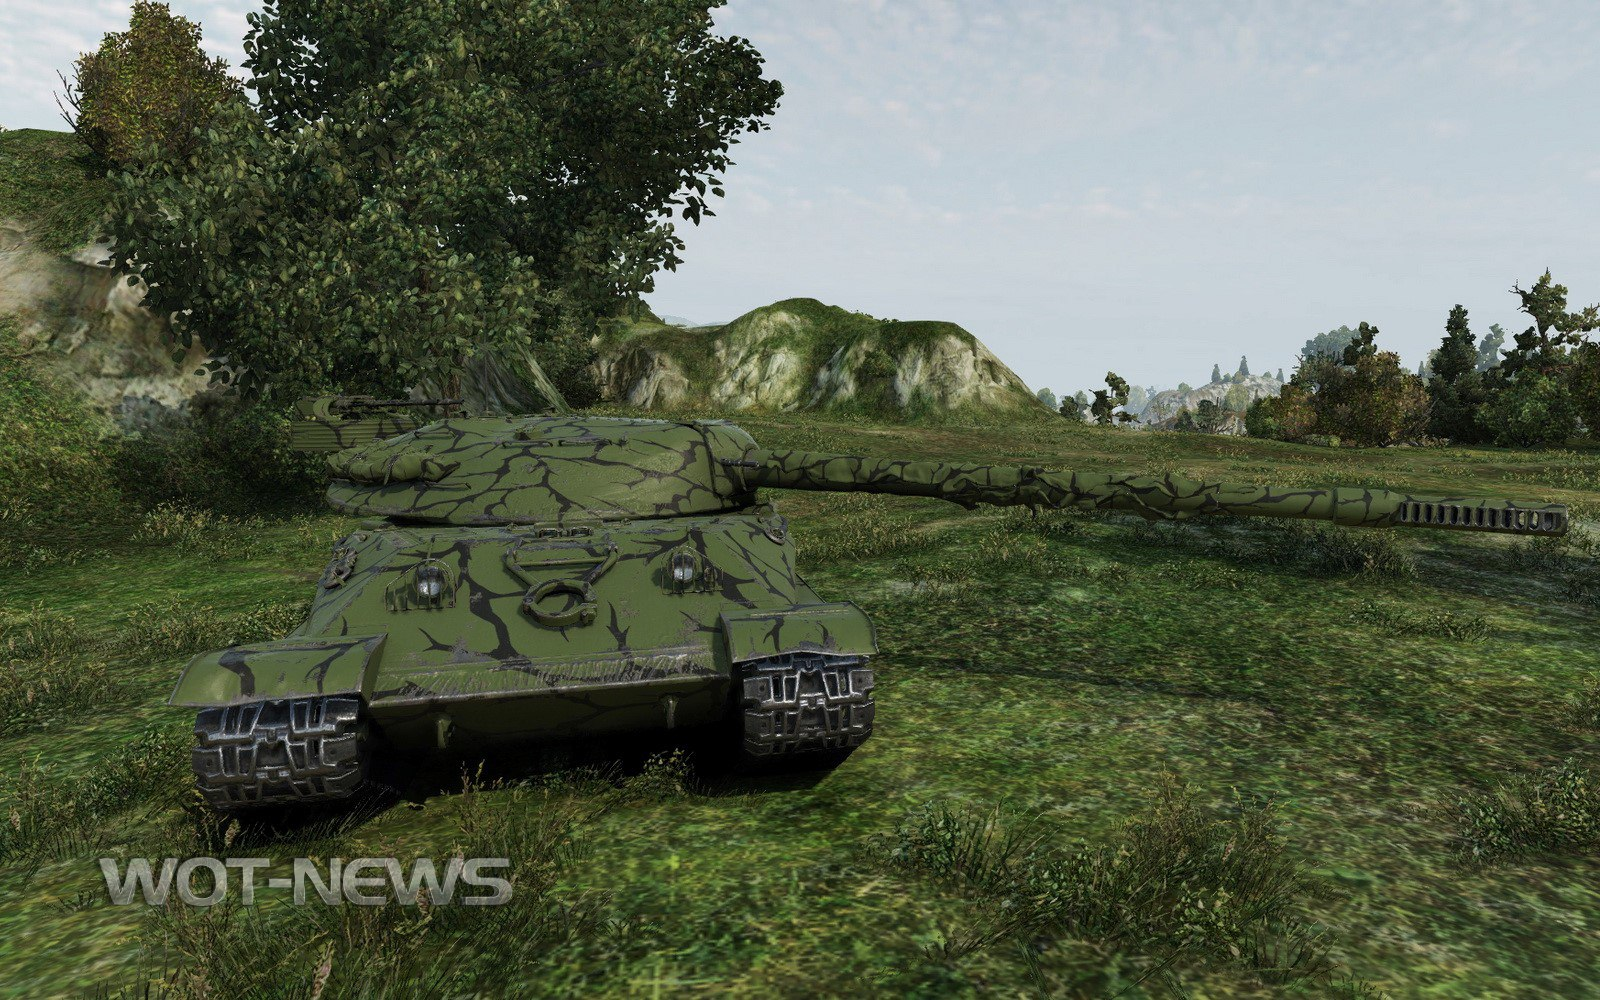 World of Tanks - Object 705A in game pictures | MMOWG net